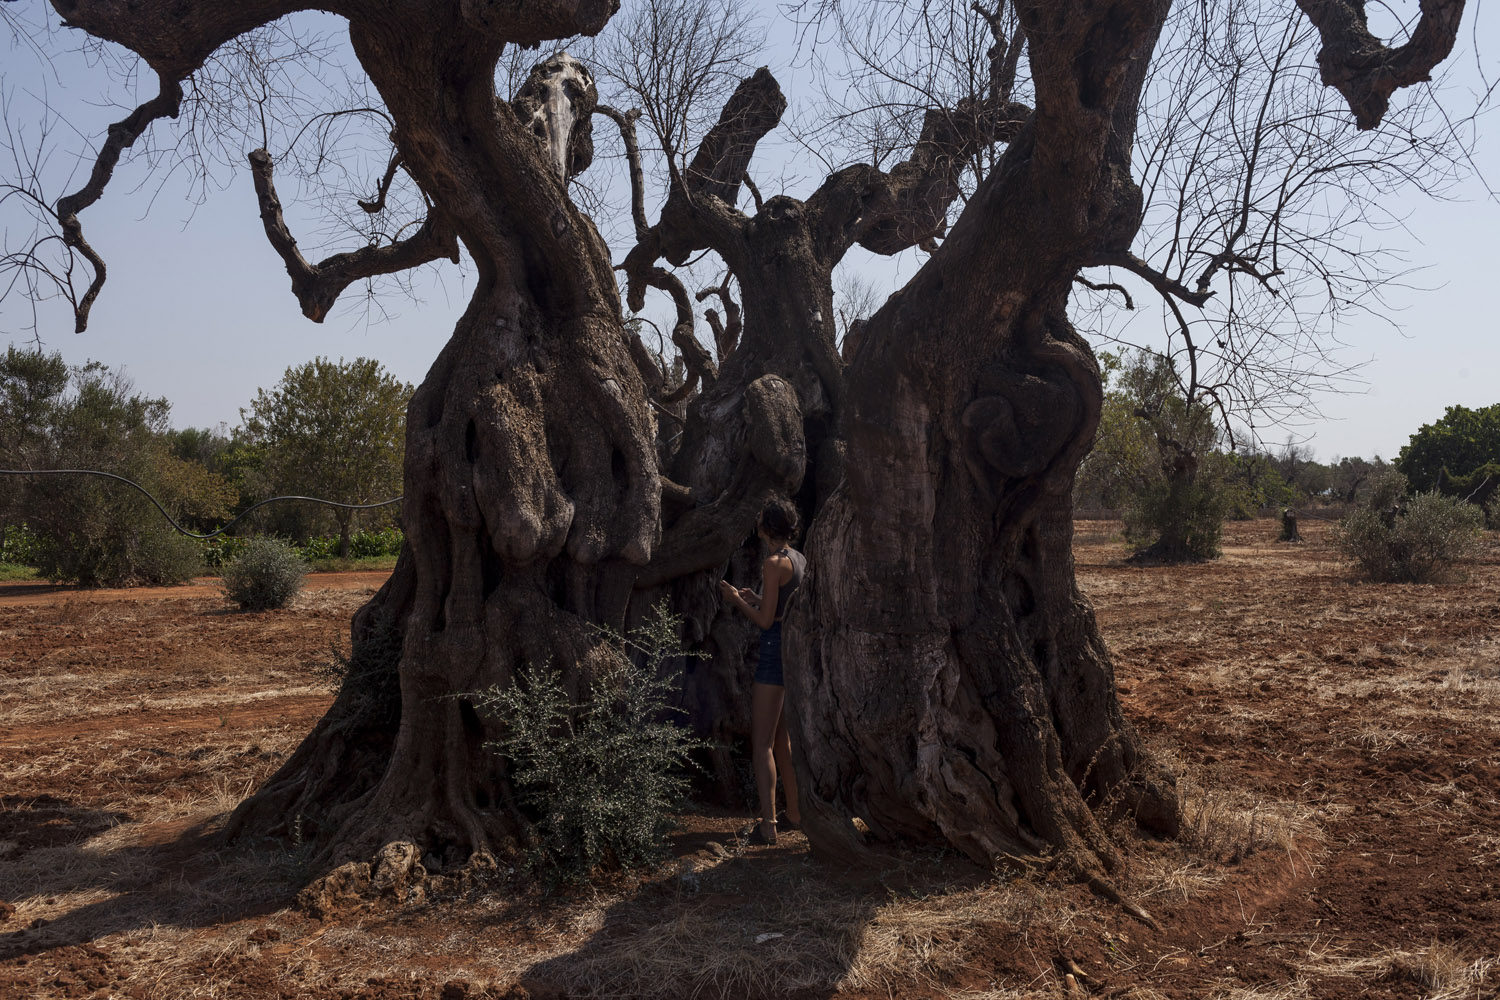 What remains of the Giant of Alliste, possibly the largest and oldest olive tree in Puglia. All sorts of treatments and remedies have been inflicted on this majestic tree, all to no avail.